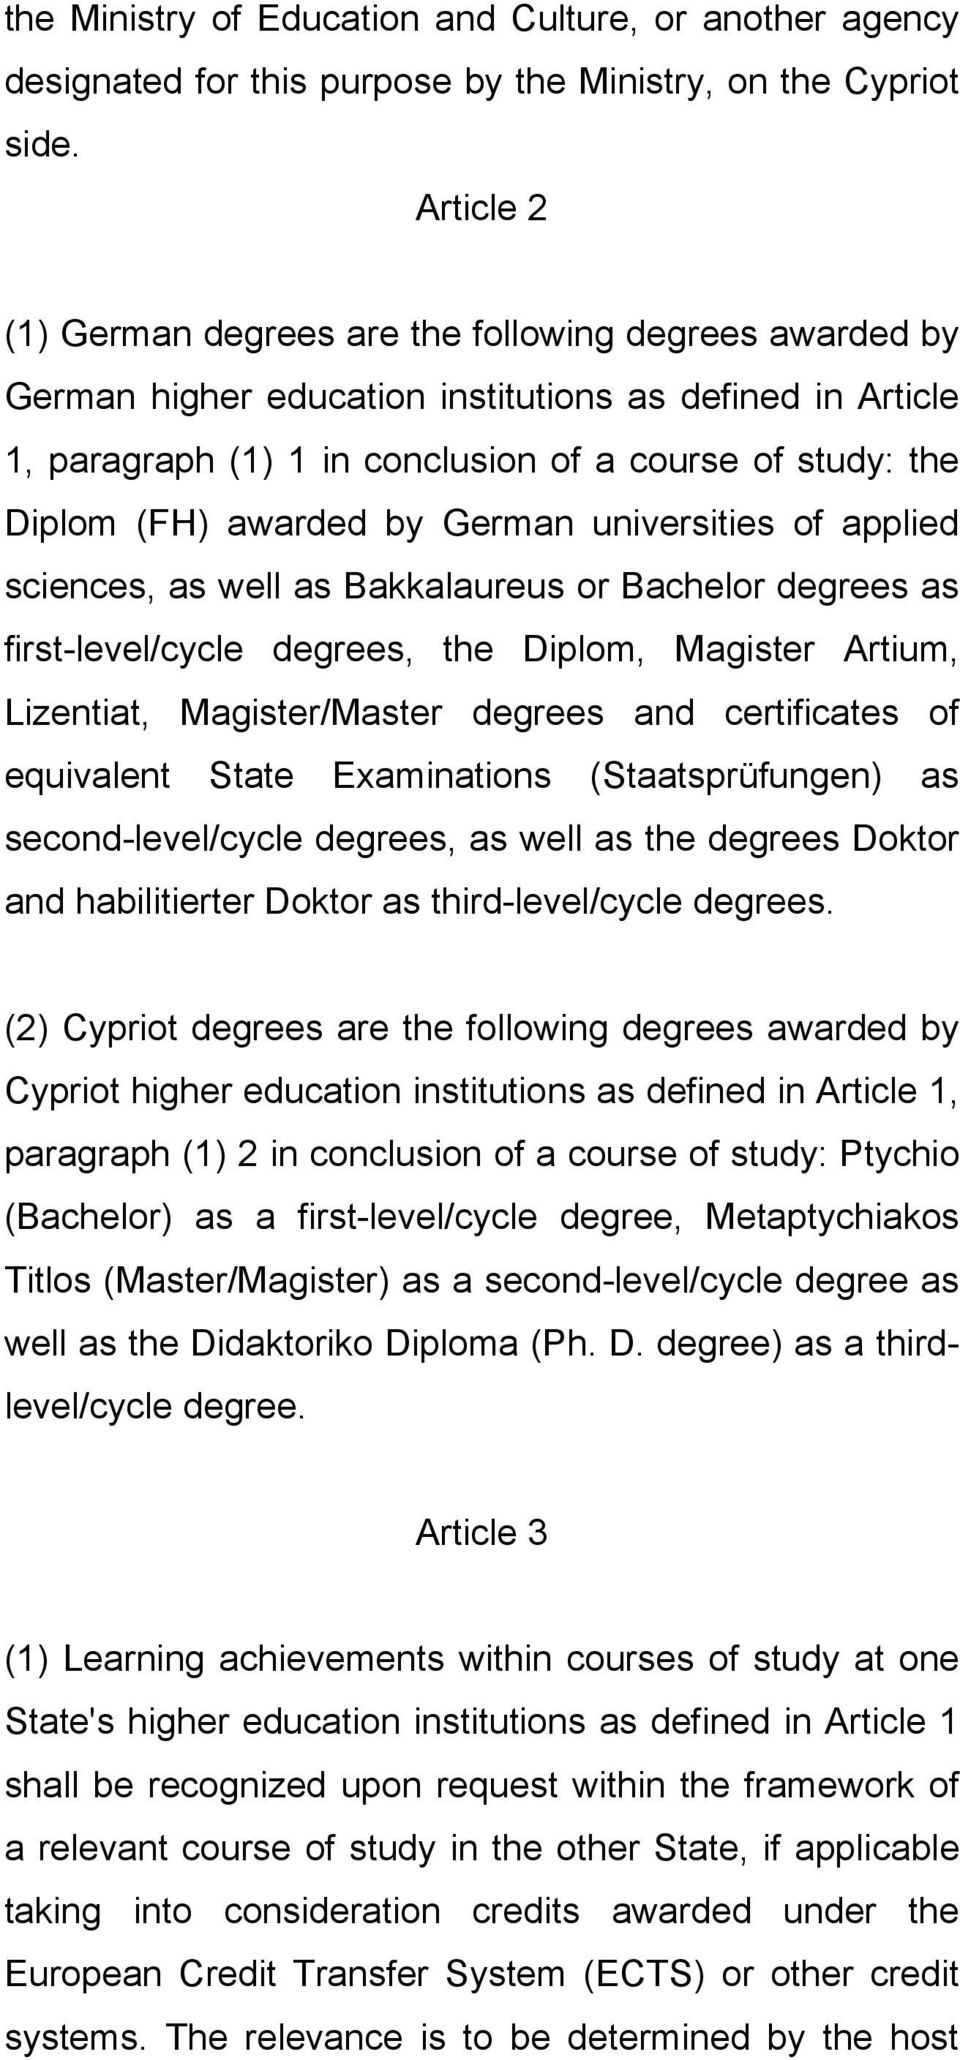 awarded by German universities of applied sciences, as well as Bakkalaureus or Bachelor degrees as first-level/cycle degrees, the Diplom, Magister Artium, Lizentiat, Magister/Master degrees and